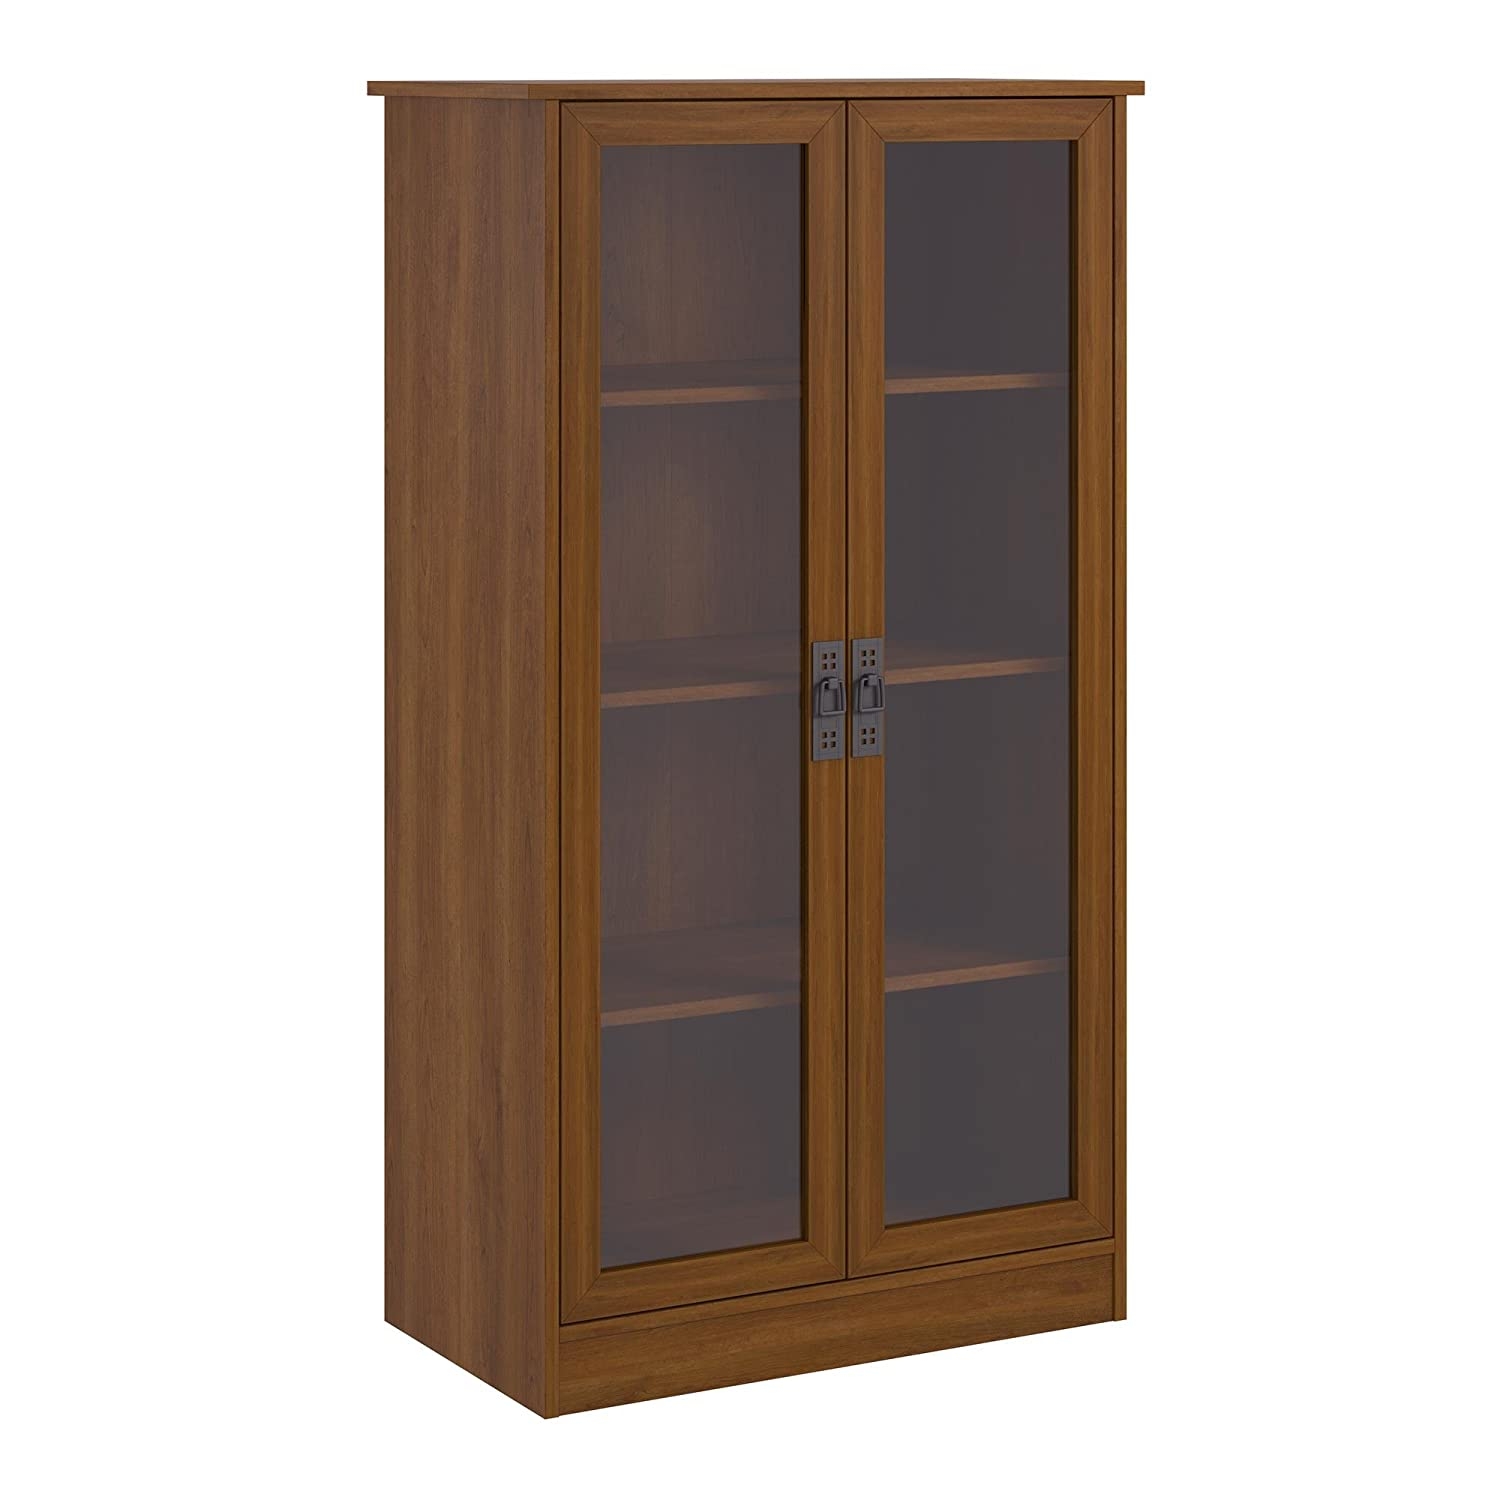 Amazon.com: Ameriwood Home Quinton Point Bookcase with Glass Doors, Inspire  Cherry: Kitchen & Dining